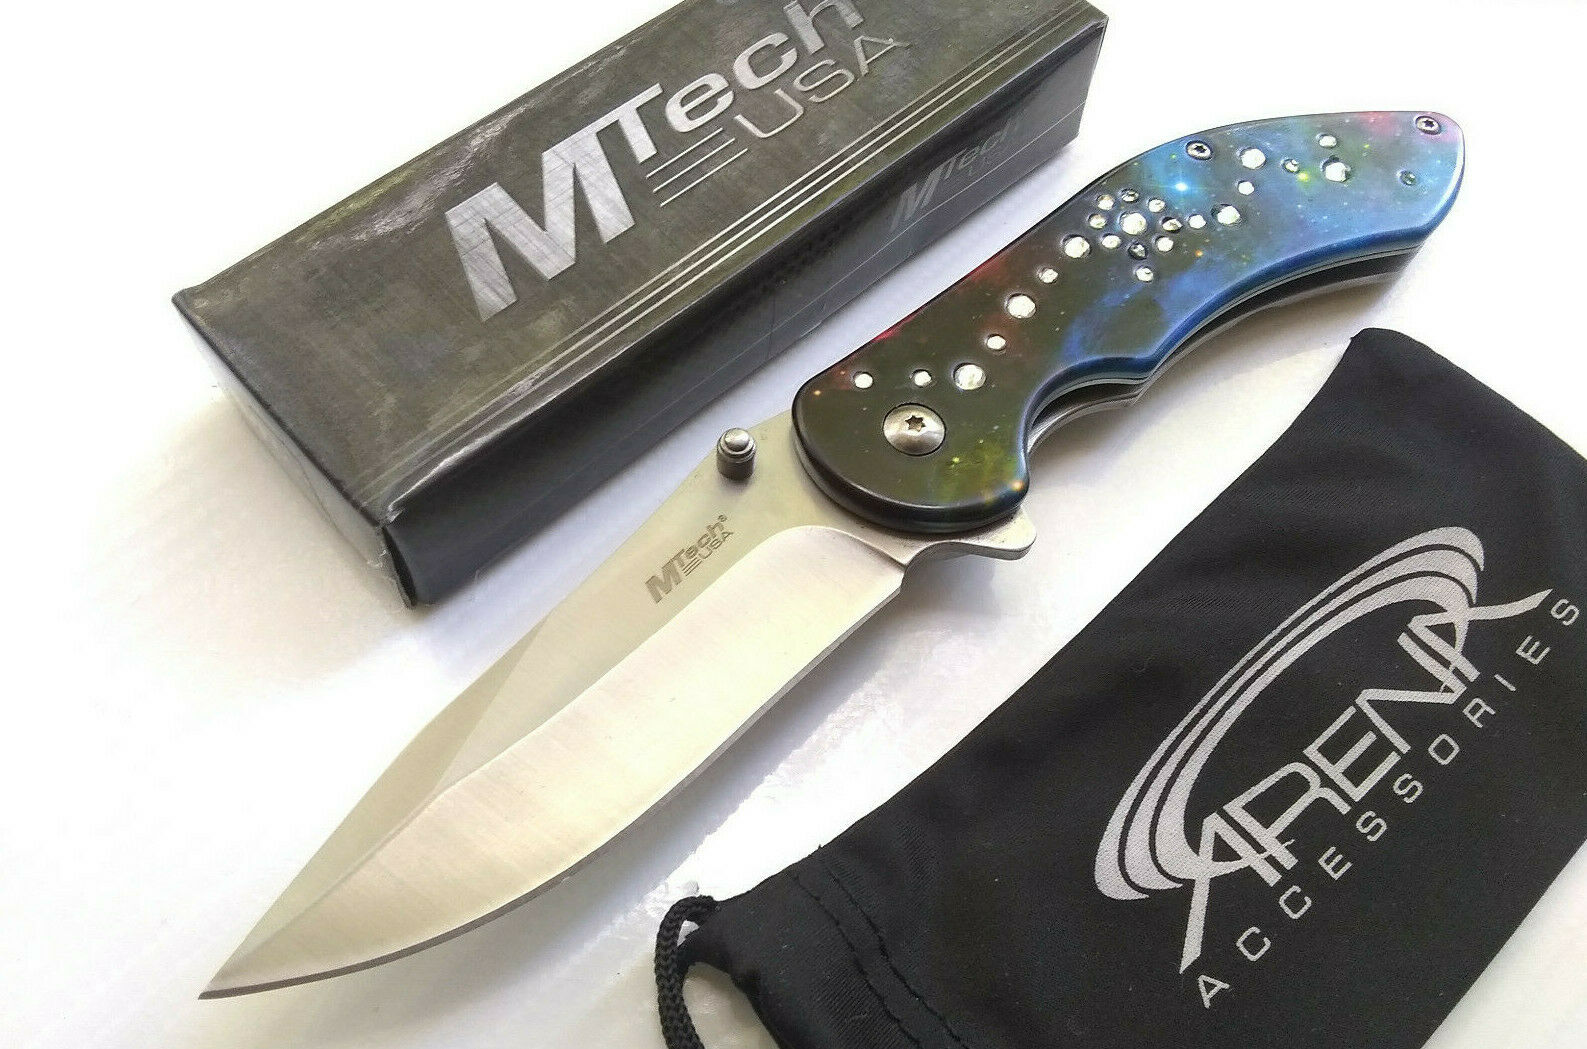 MTech Starry Galaxy Diamond Stone Spring Assisted Pocket Knife FrameLock Flipper EDC